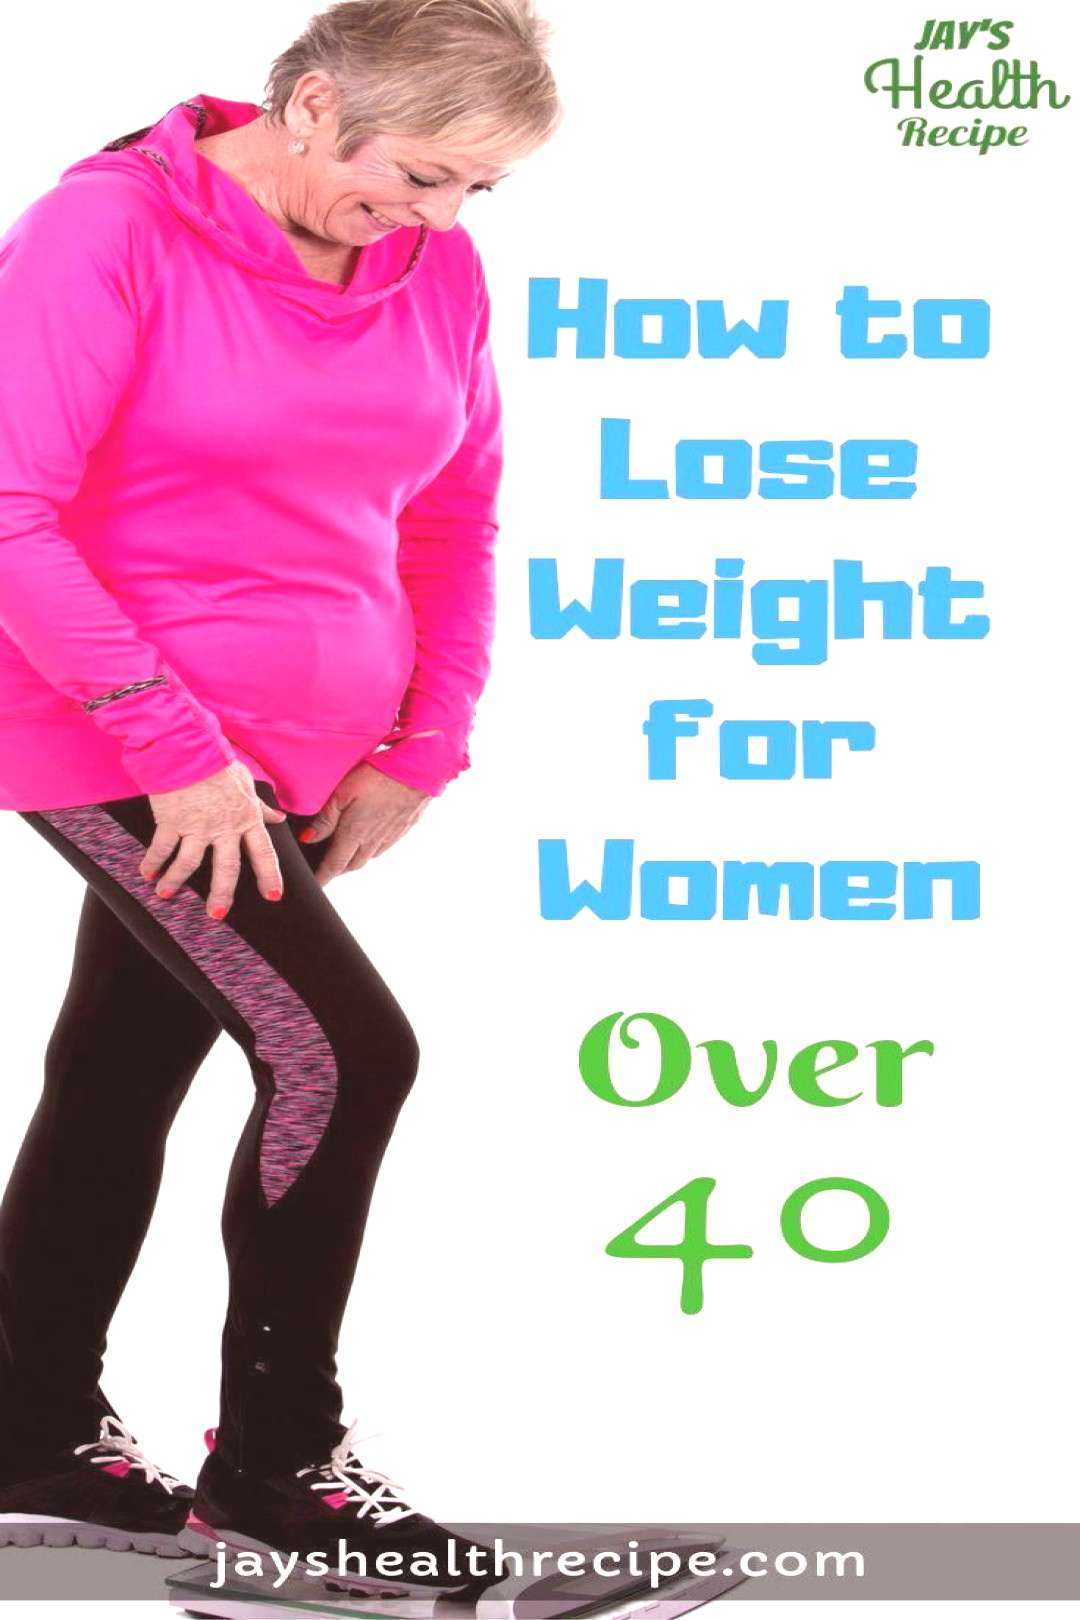 Diet cures more than doctors. Weight Loss for Women Over 50,  Diet cures more than doctors. Weight